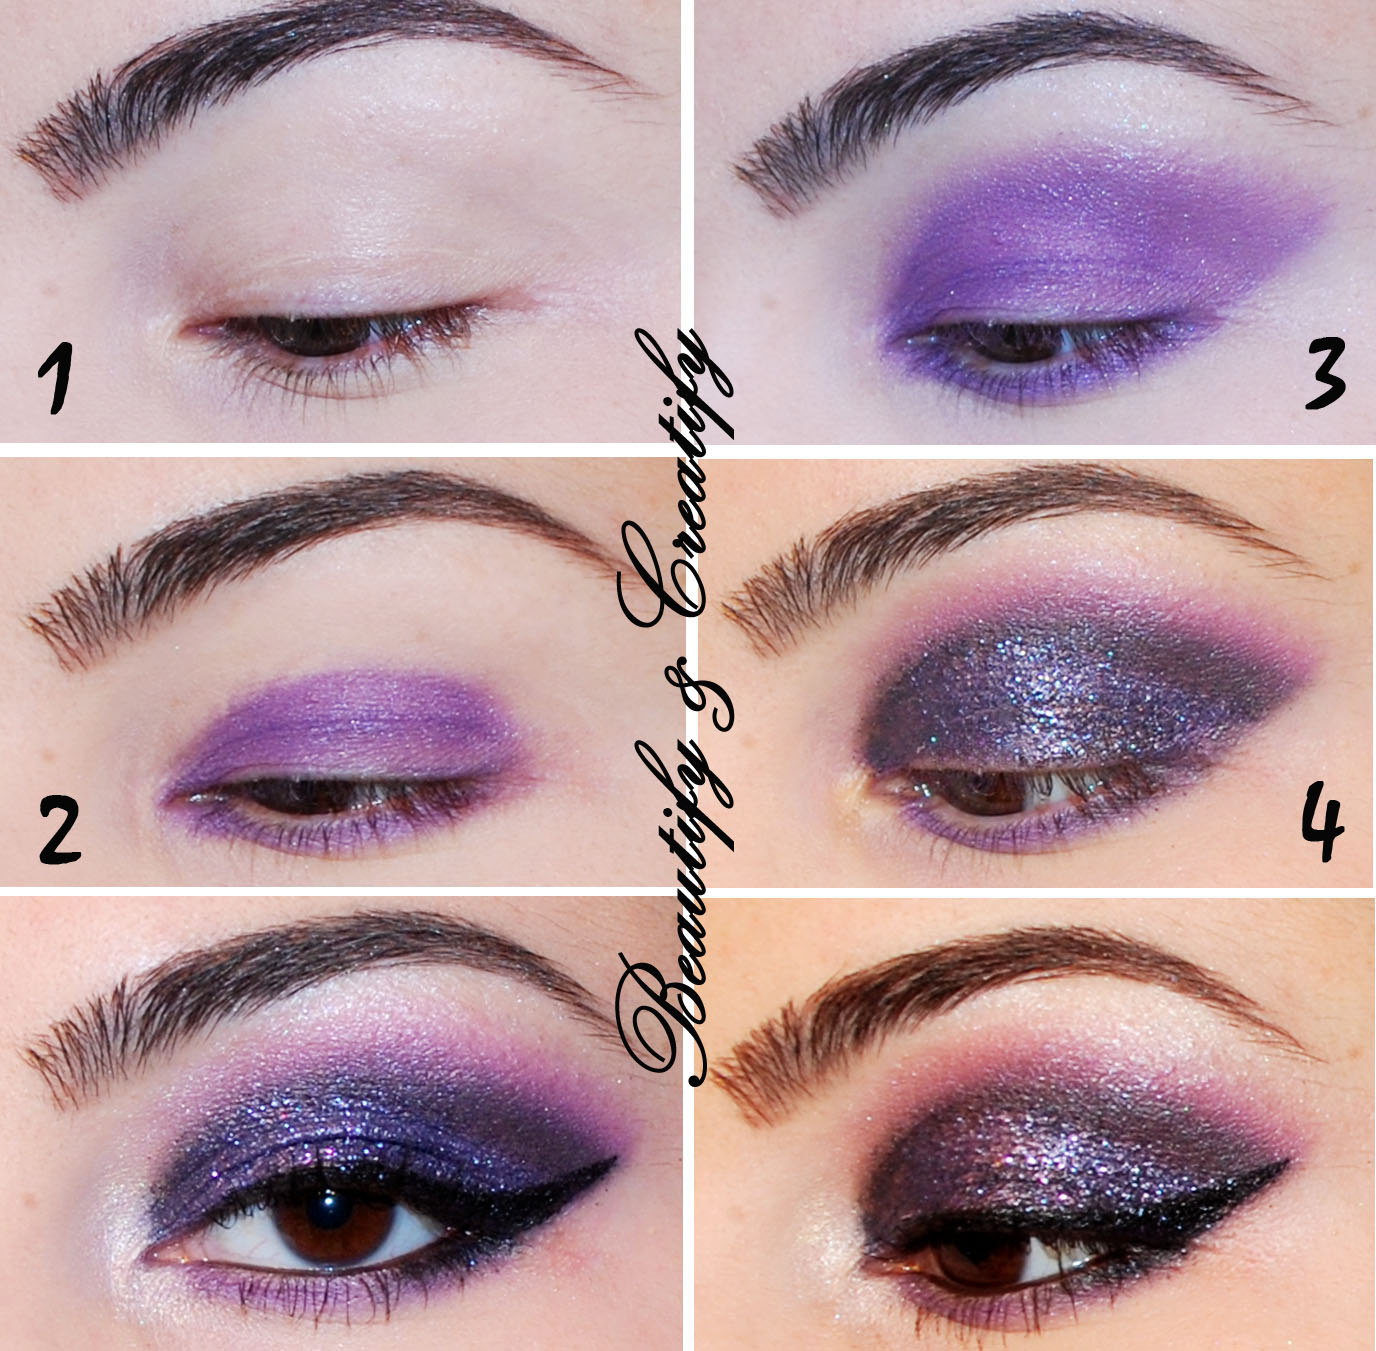 How To Apply Glitter Eyeshadow Perfectly? Monday, April 8, 2013